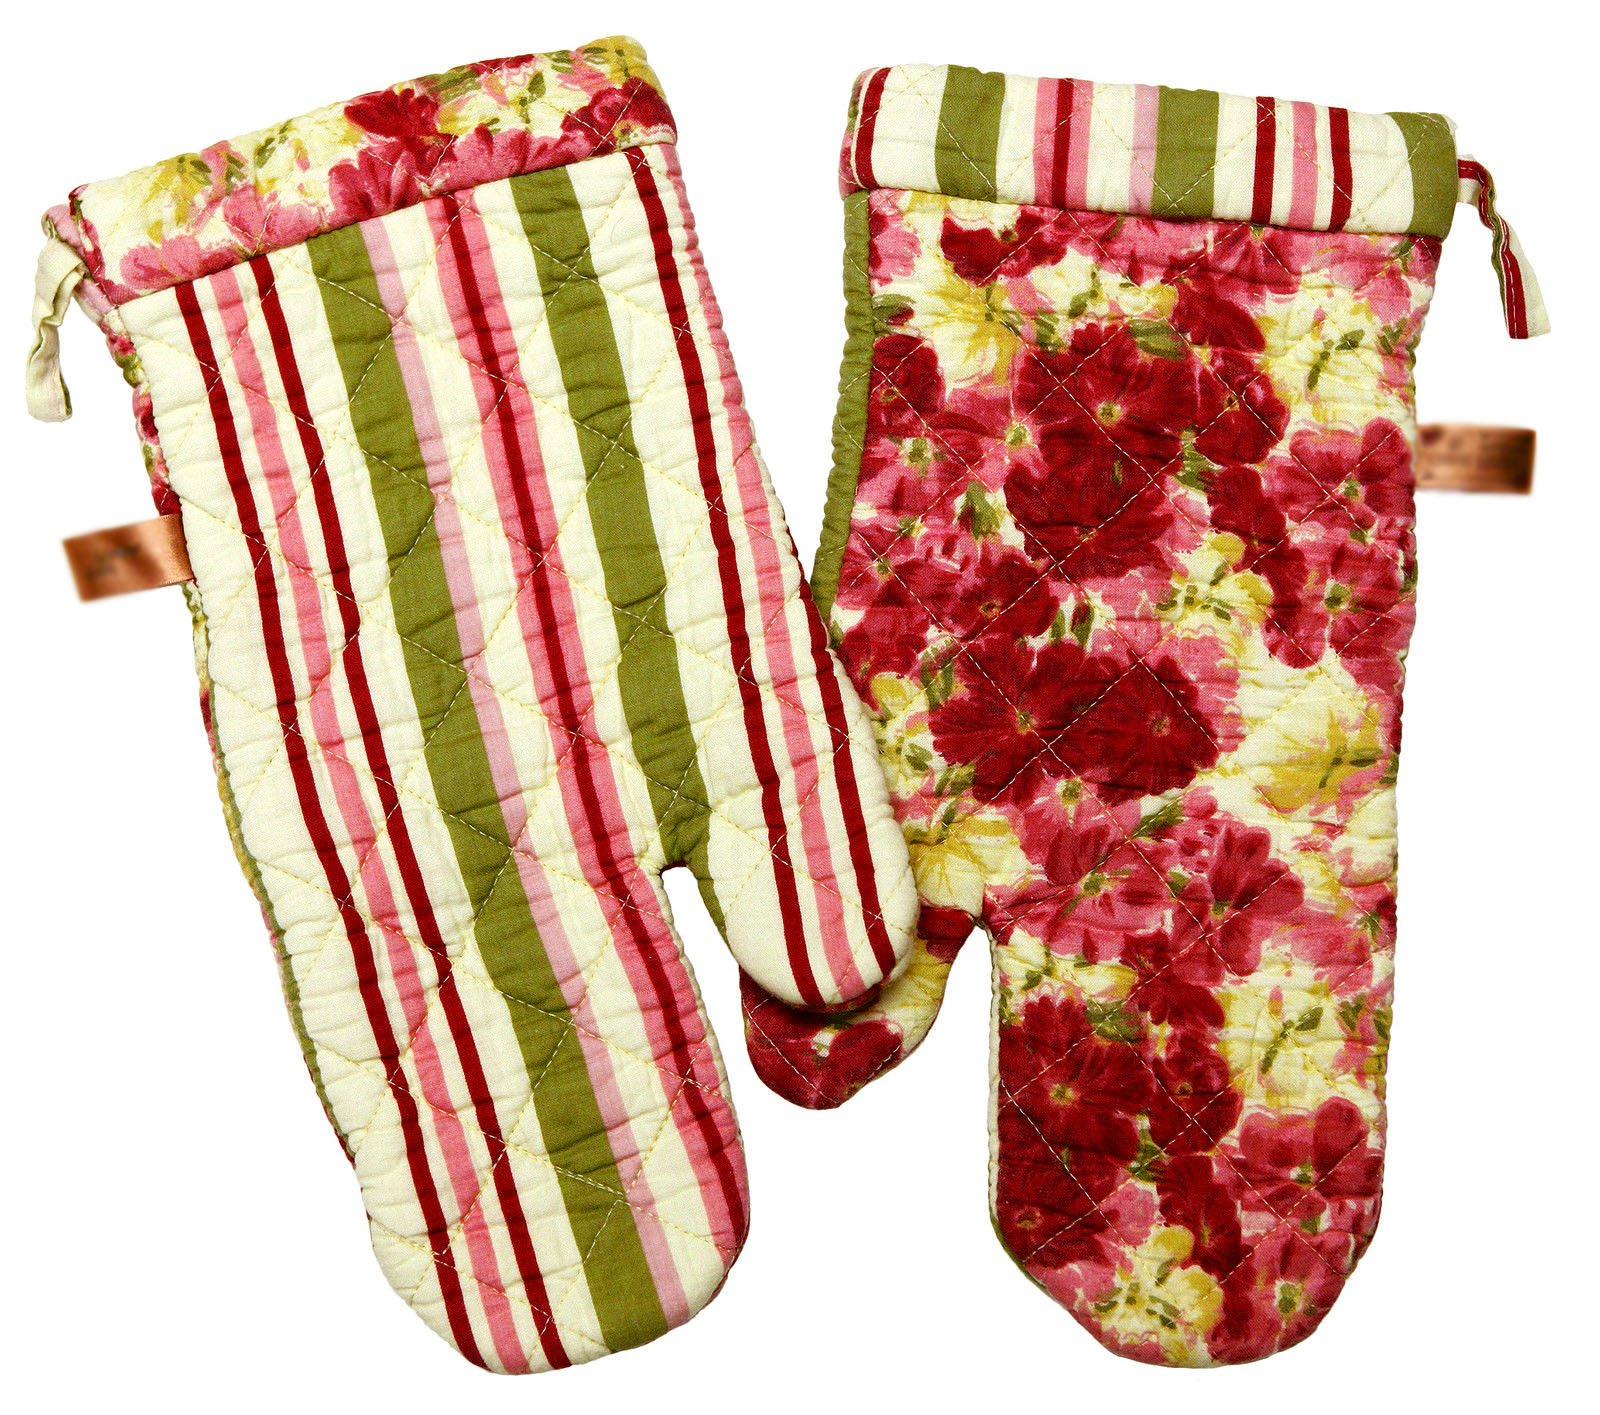 "Custom & Durable {14"" x 6.5"" Inch Each} 4 Set Pack of Mid Size ""Non-Slip"" Pot Holders Gloves Made of Cotton for Carrying Hot Dishes w/ Quilted Classic Stripe Floral Style {Green, Red, & Pink} by mySimple Products"